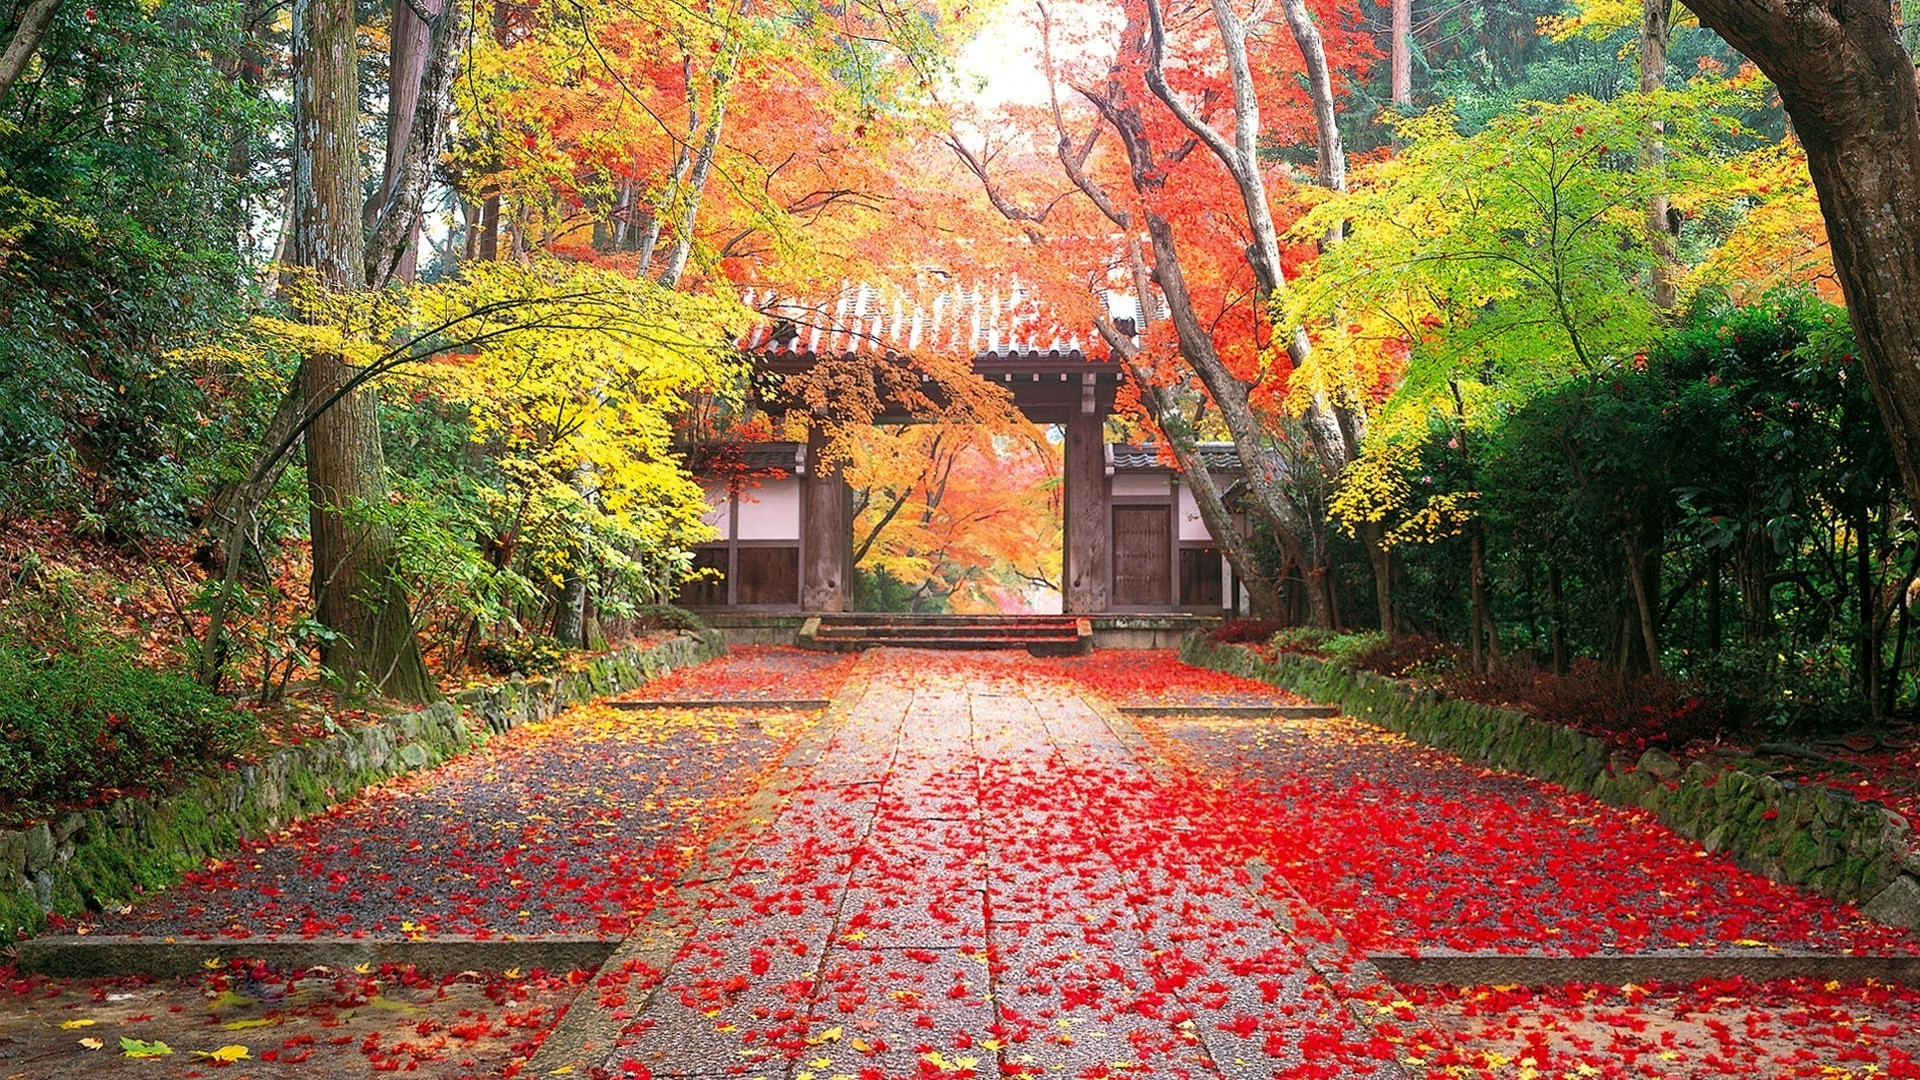 Autumn in Japan - Phone wallpapers